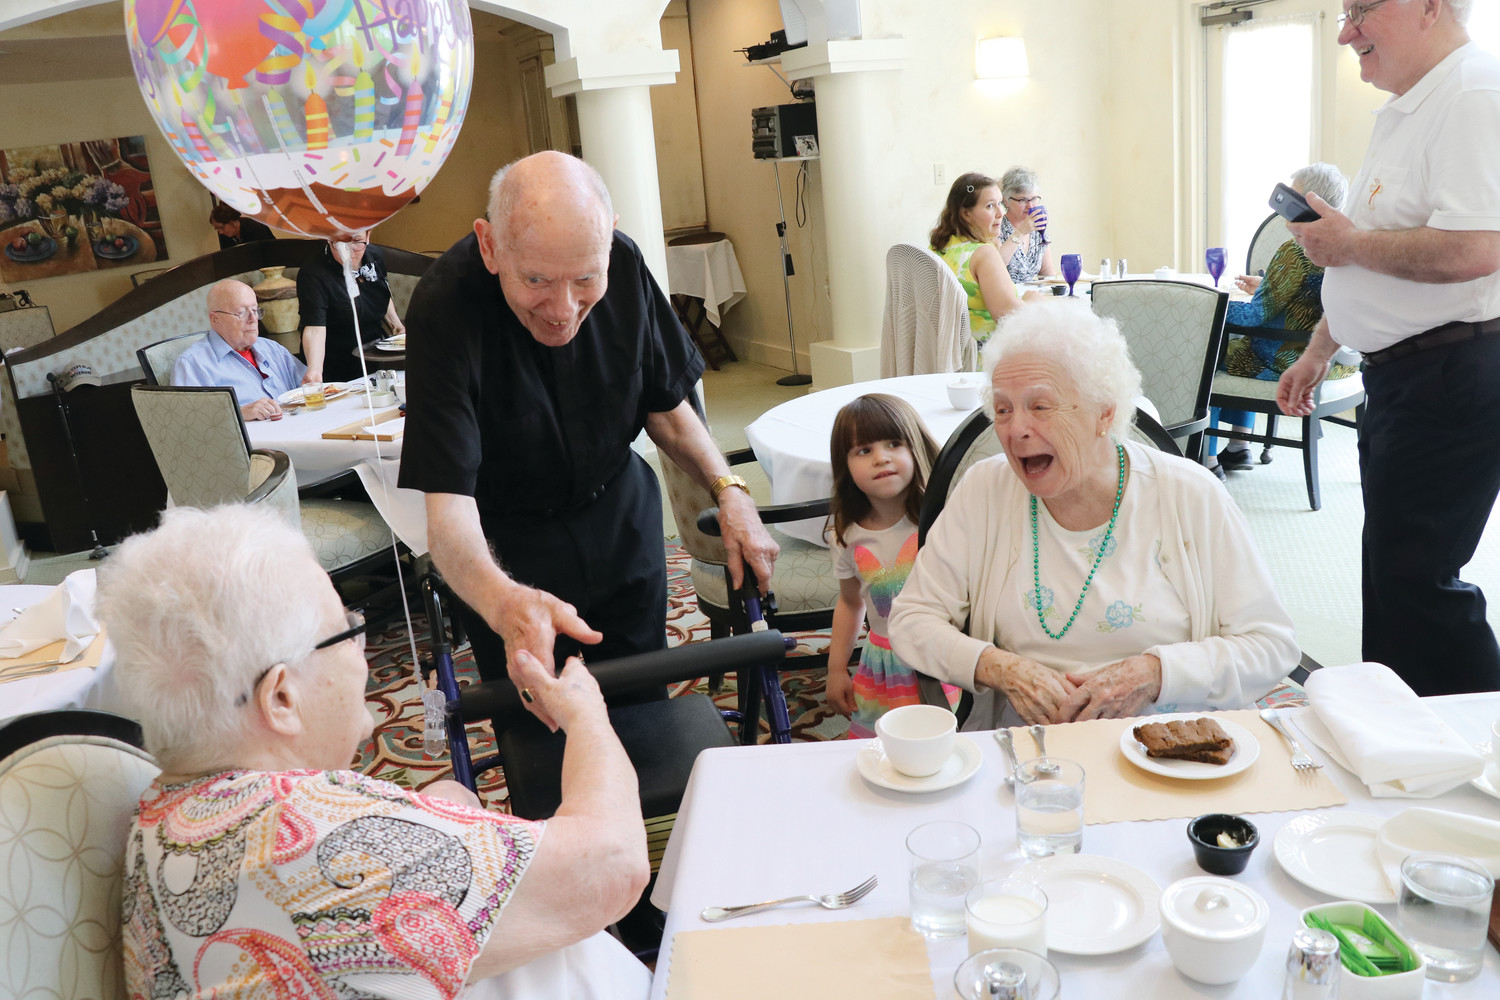 Bishop Emeritus Louis E. Gelineau visits with residents of The Villa at Saint Antoine on his 90th birthday, May 3.